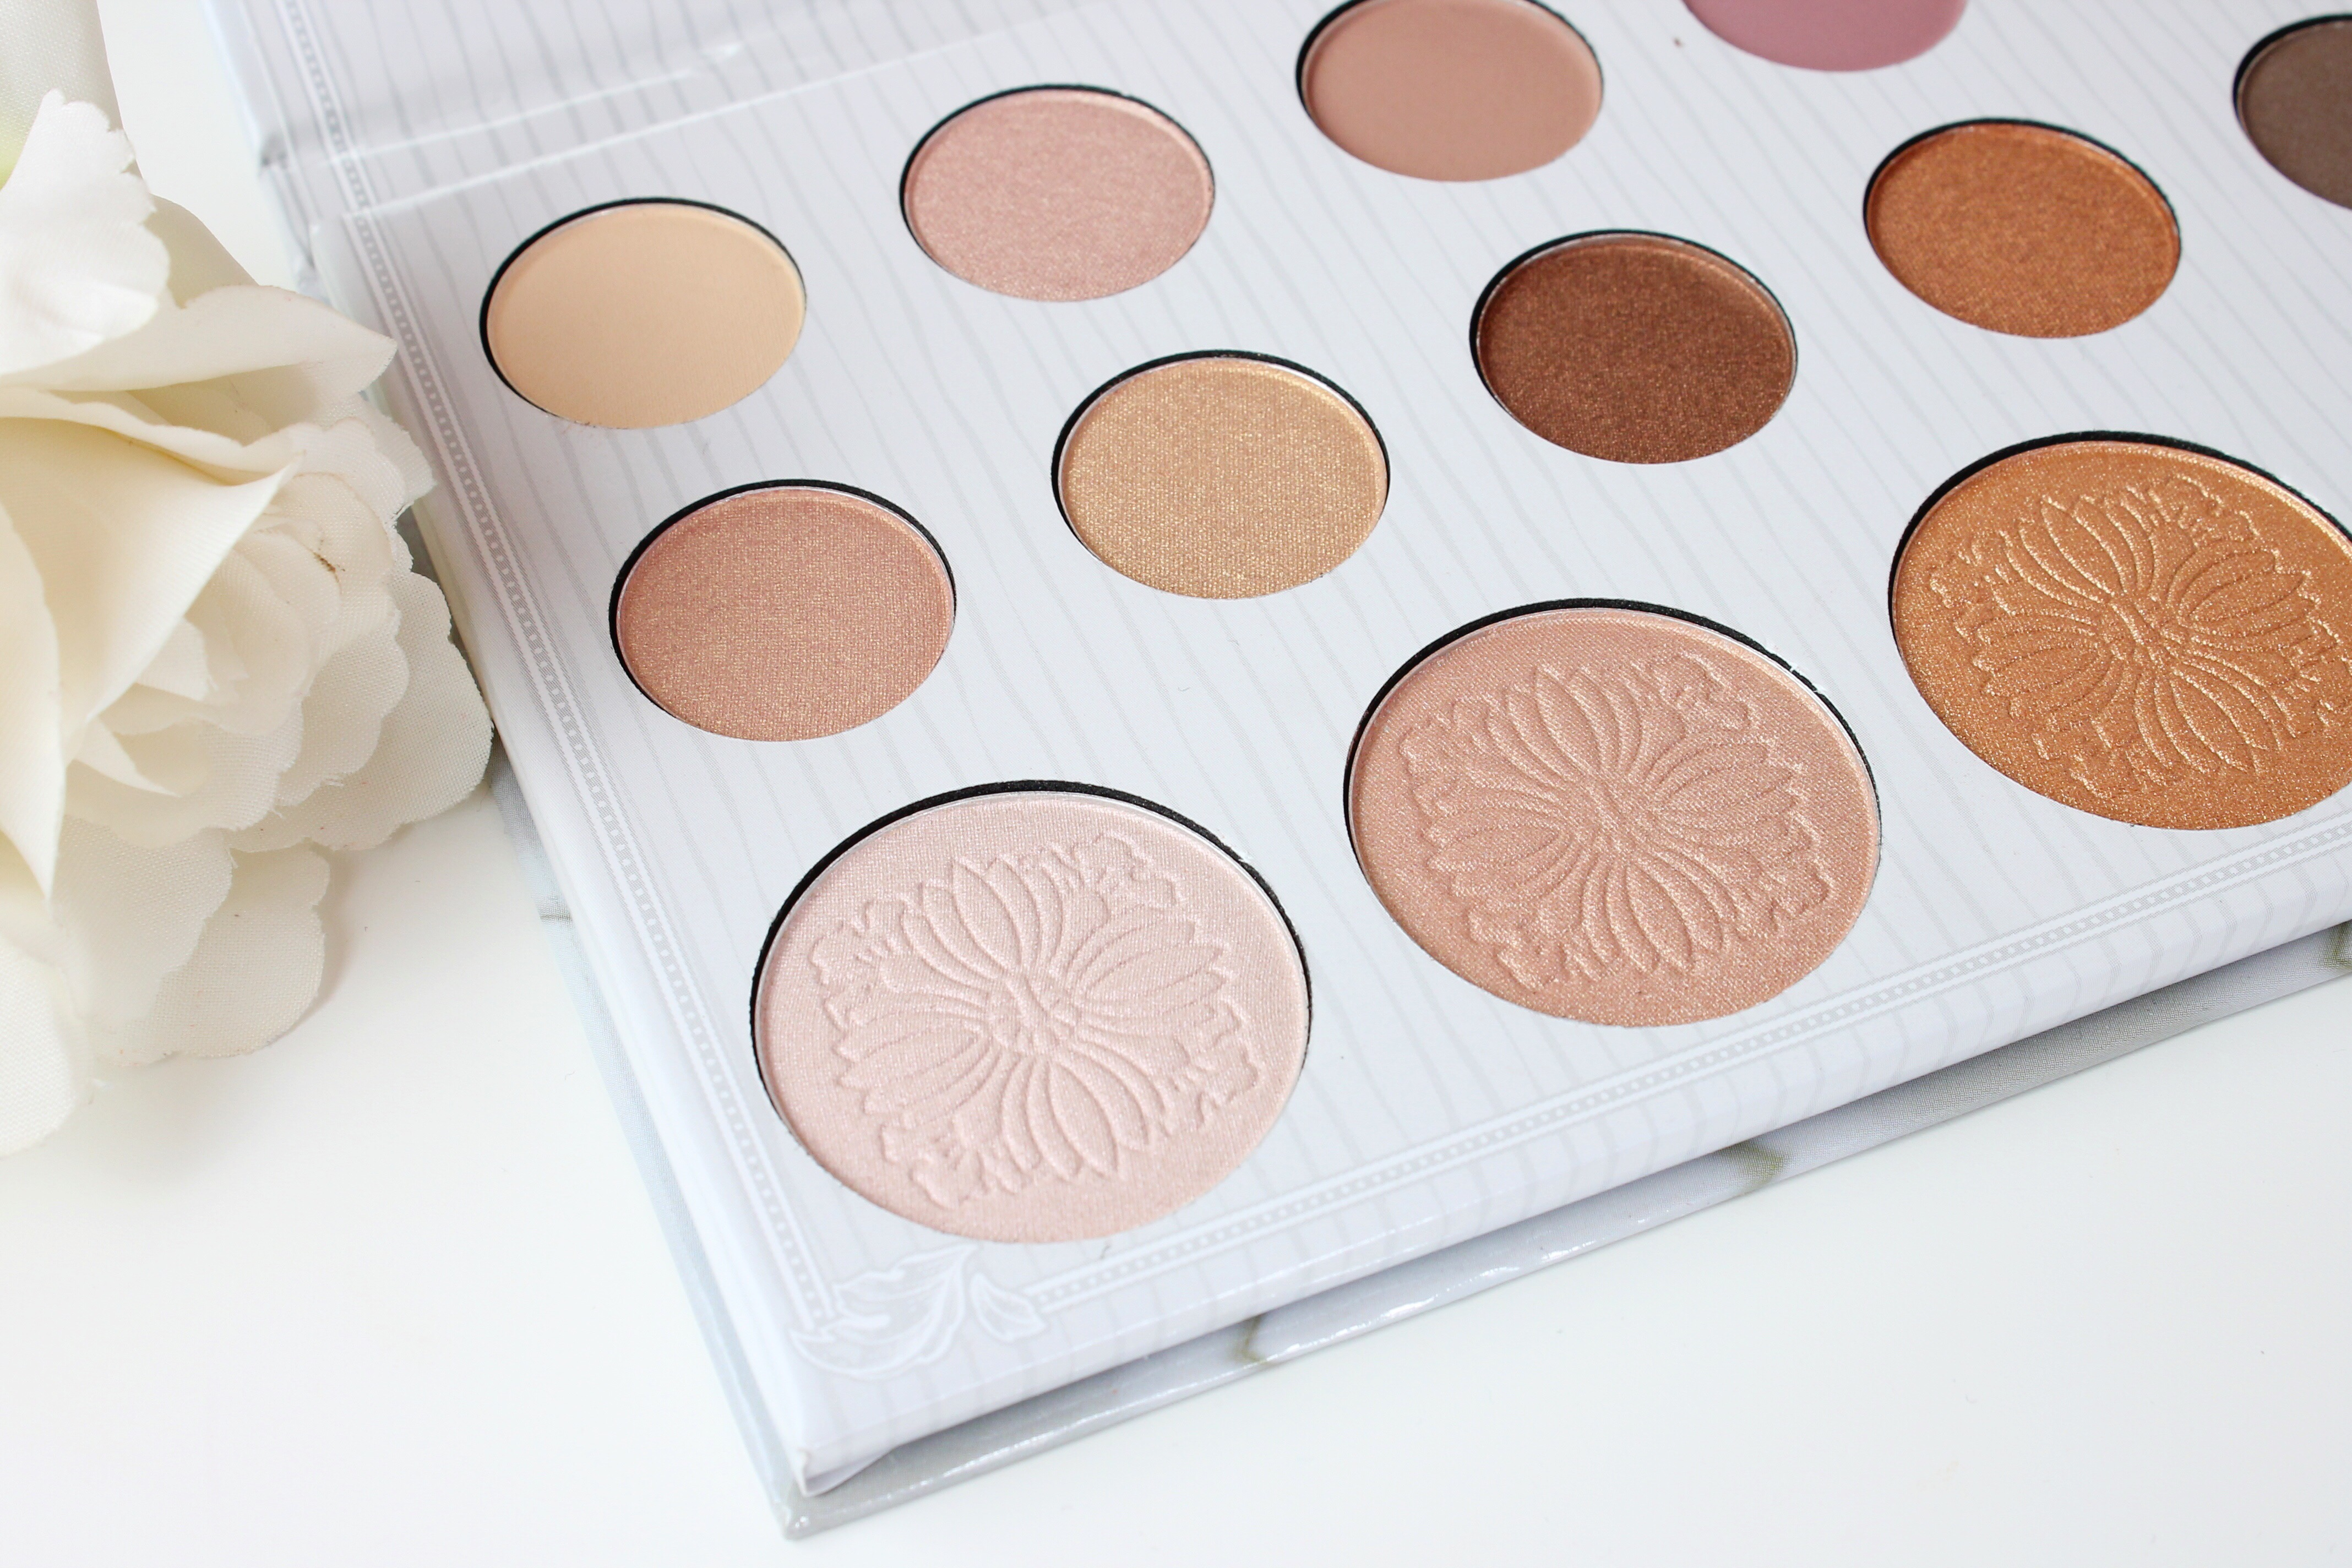 Carli Bybel Palette Swatches